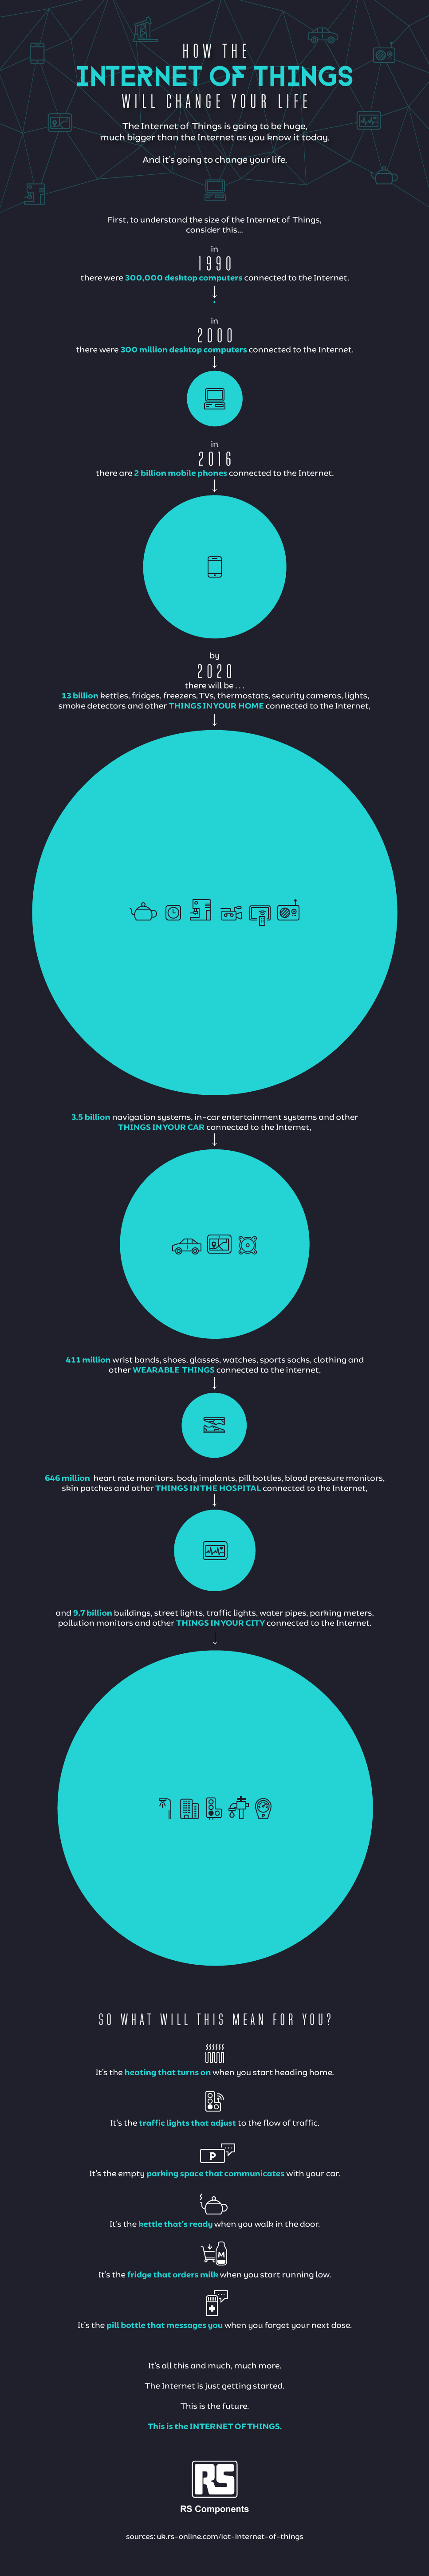 How the Internet of Things Will Change Your Life [Infographic] | Social Media Today